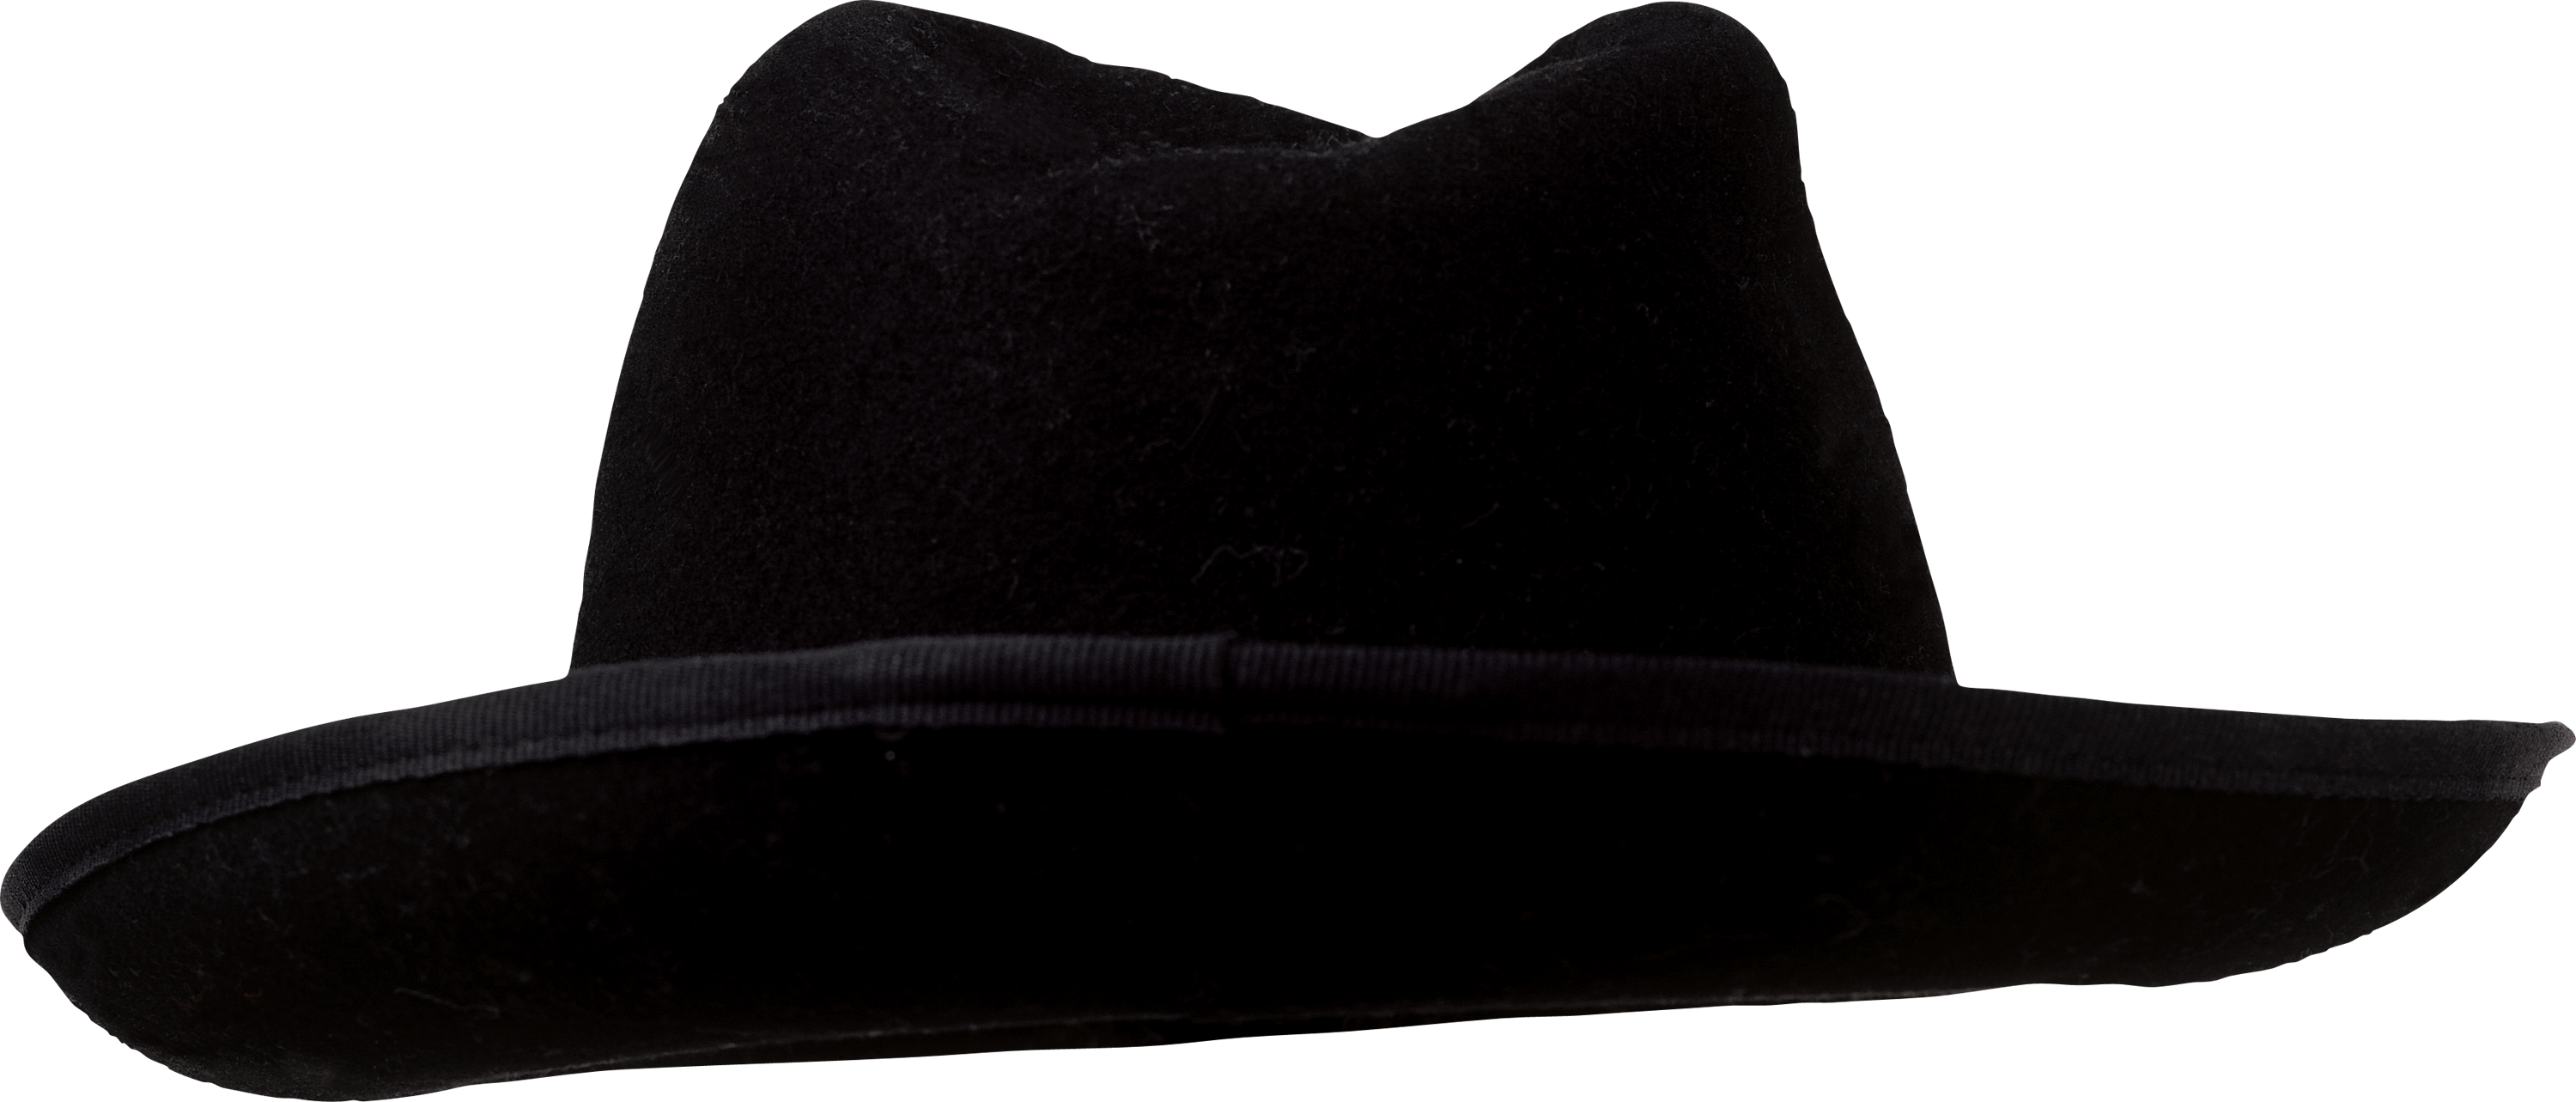 Fedora clipart wedding hat. Png images free download